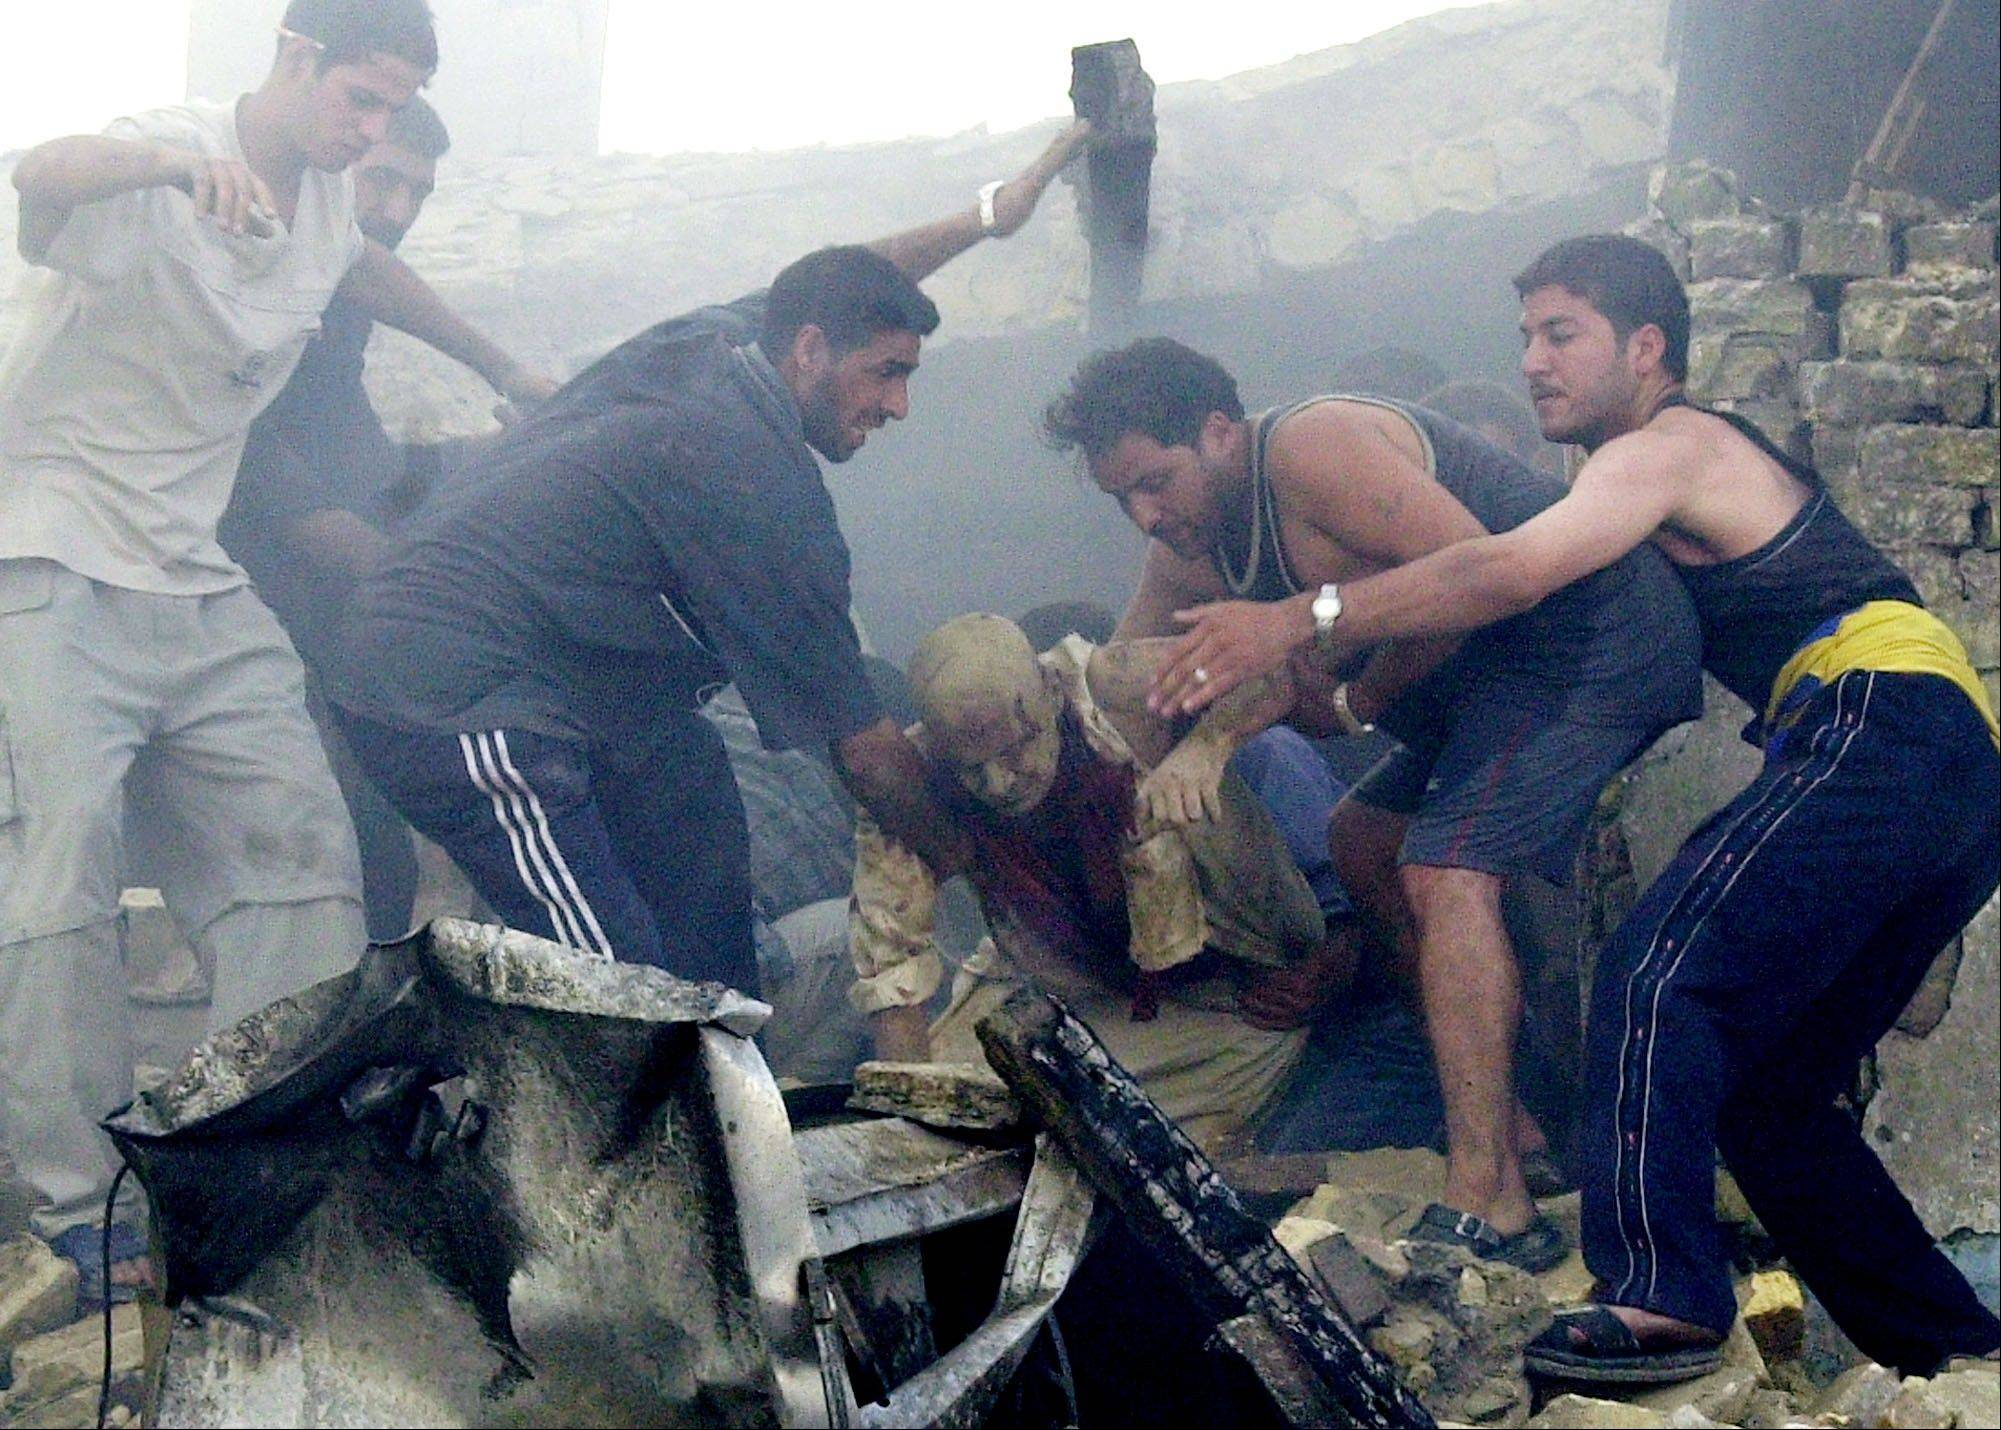 FILE - People carry an injured man from a damaged building after a car bomb exploded in central Baghdad, Iraq on Monday, June 14, 2004, killing at least 10 people, including three foreigners working to rebuild Iraq's power plants.